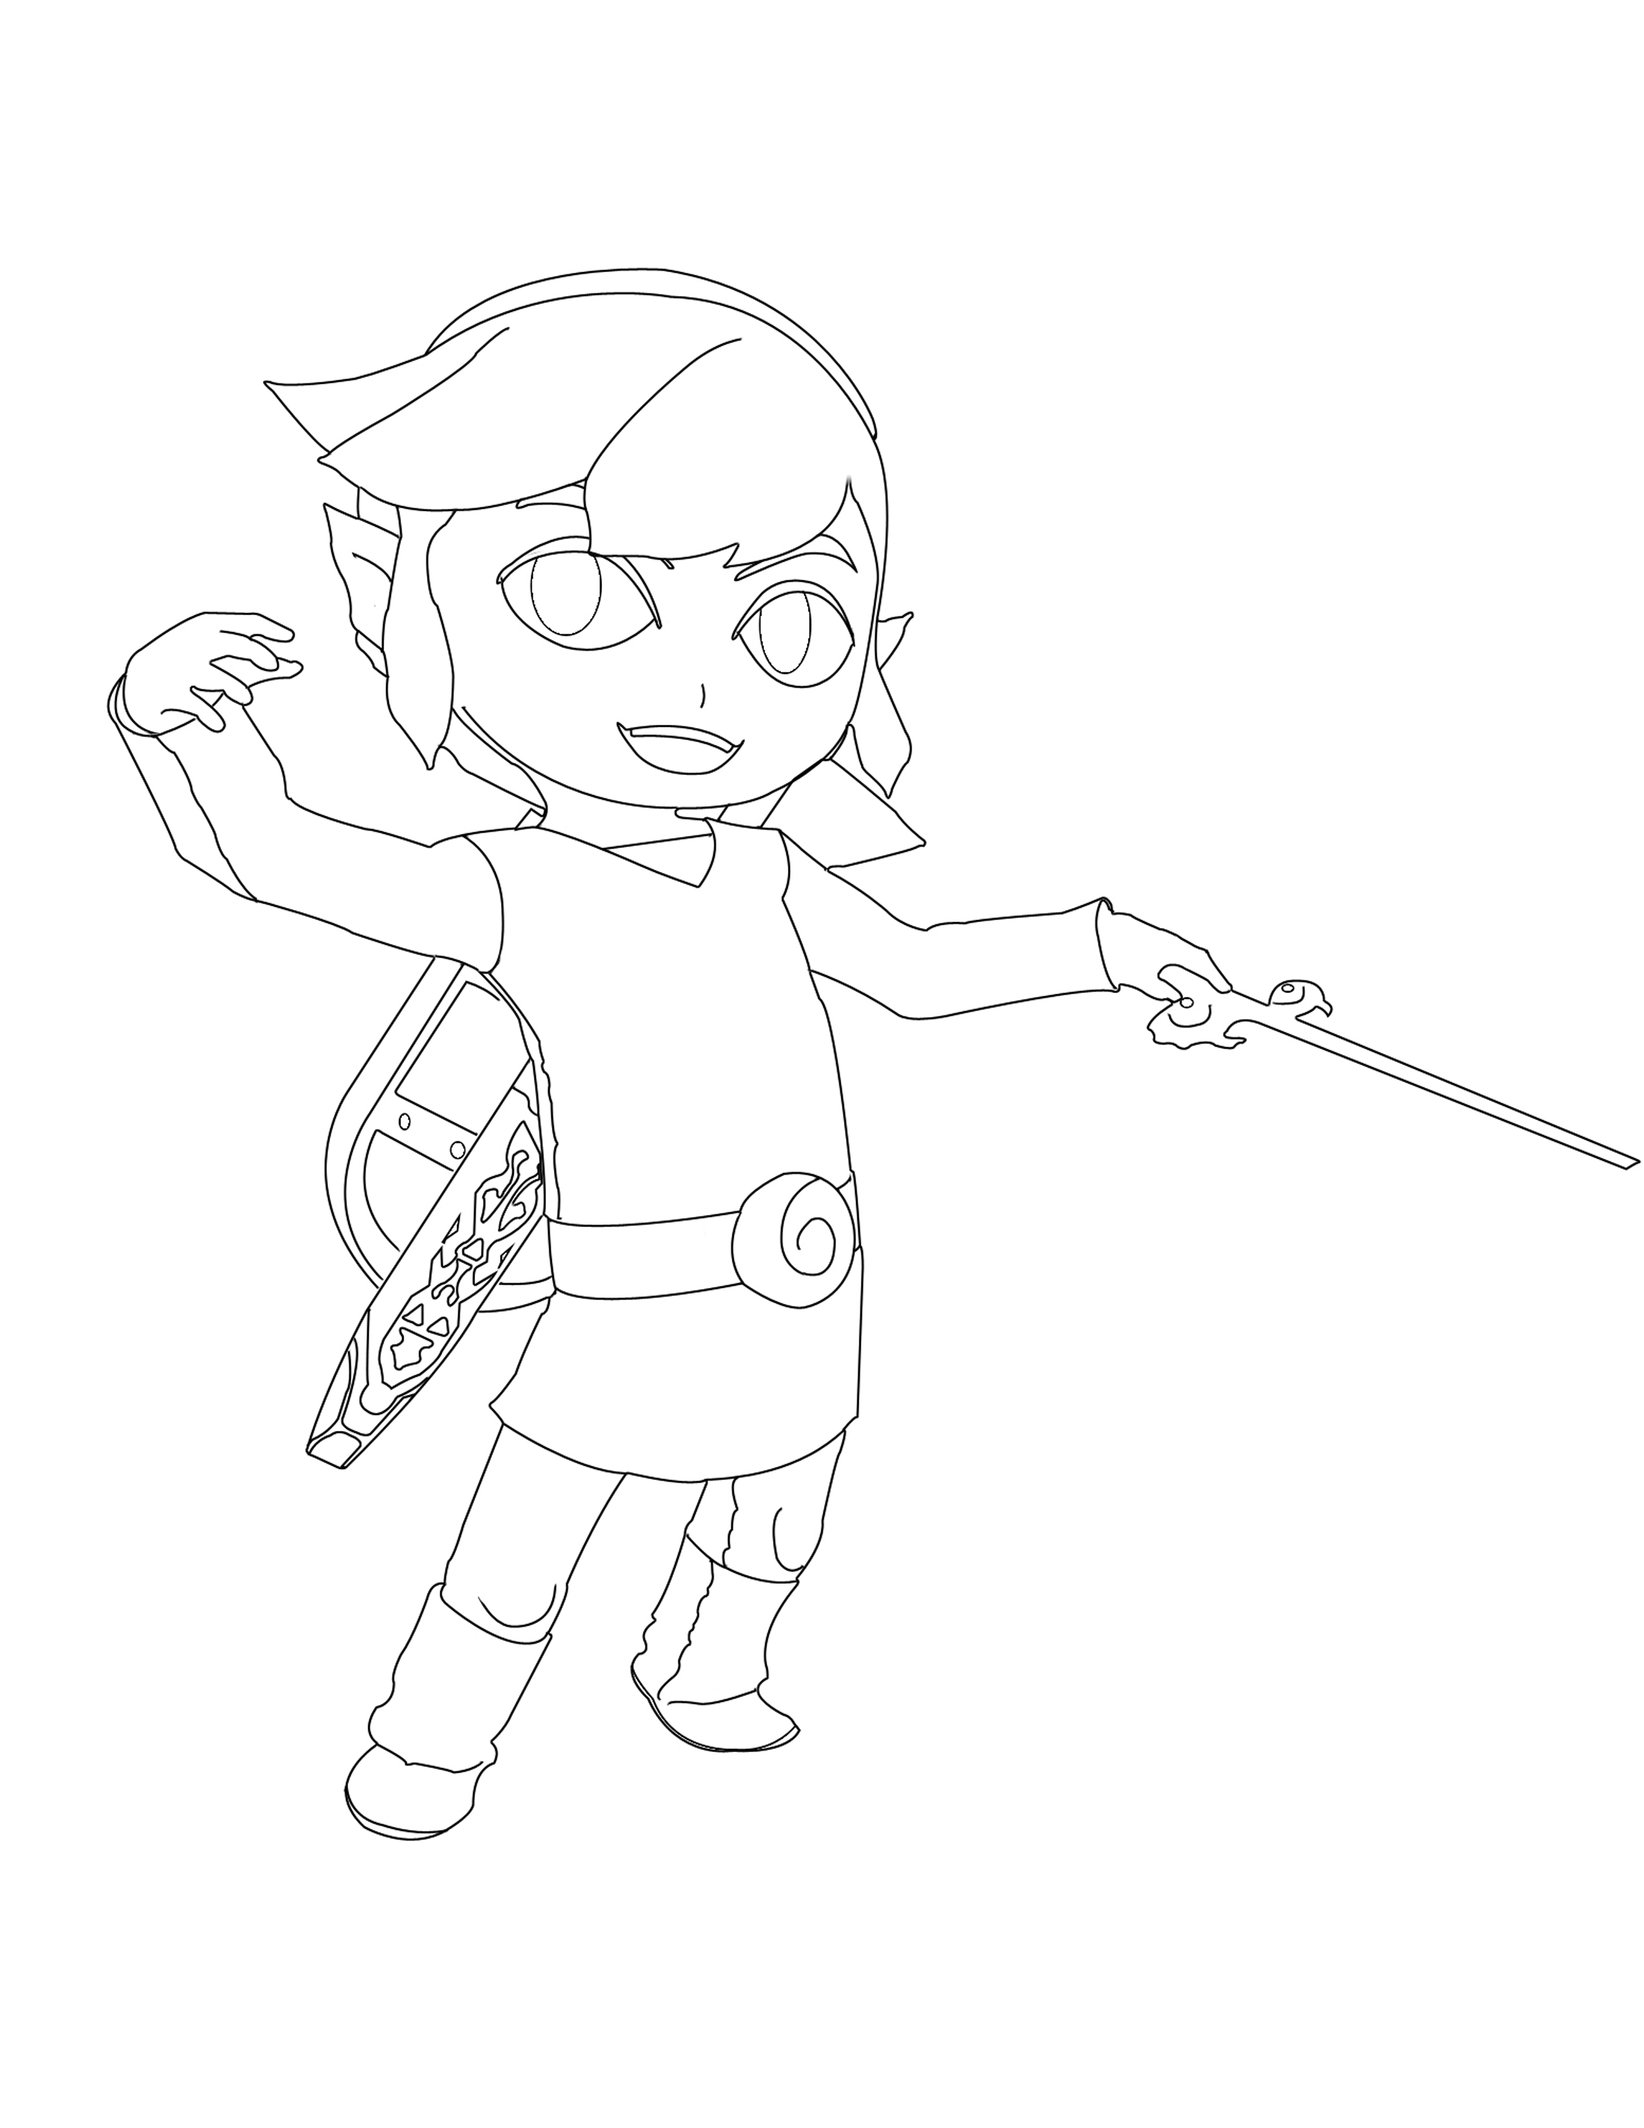 Toon Link Drawing at GetDrawings.com   Free for personal use Toon ...